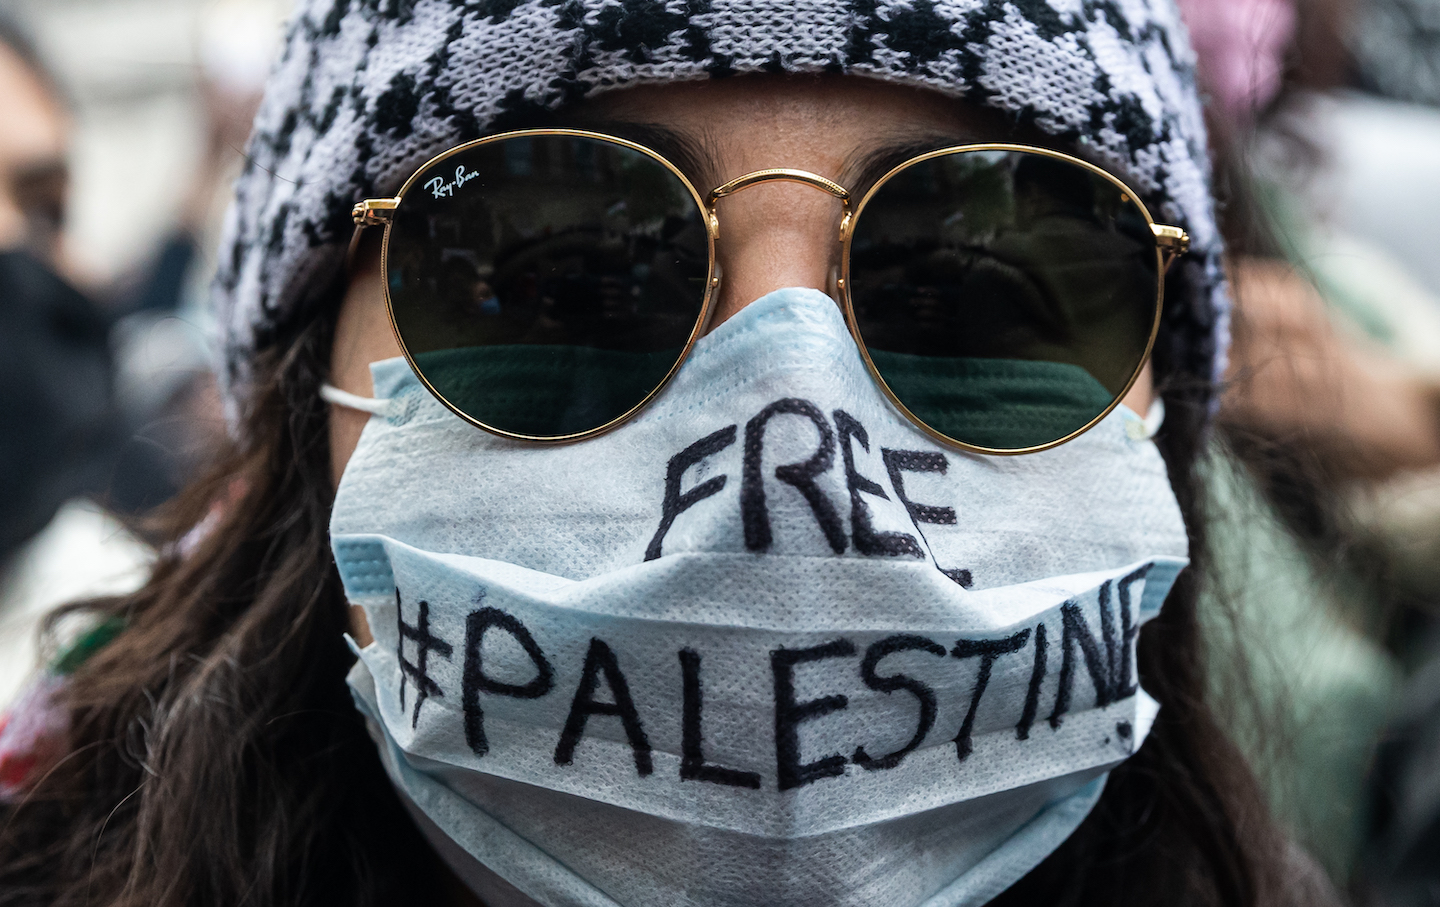 Palestinian Protests In London